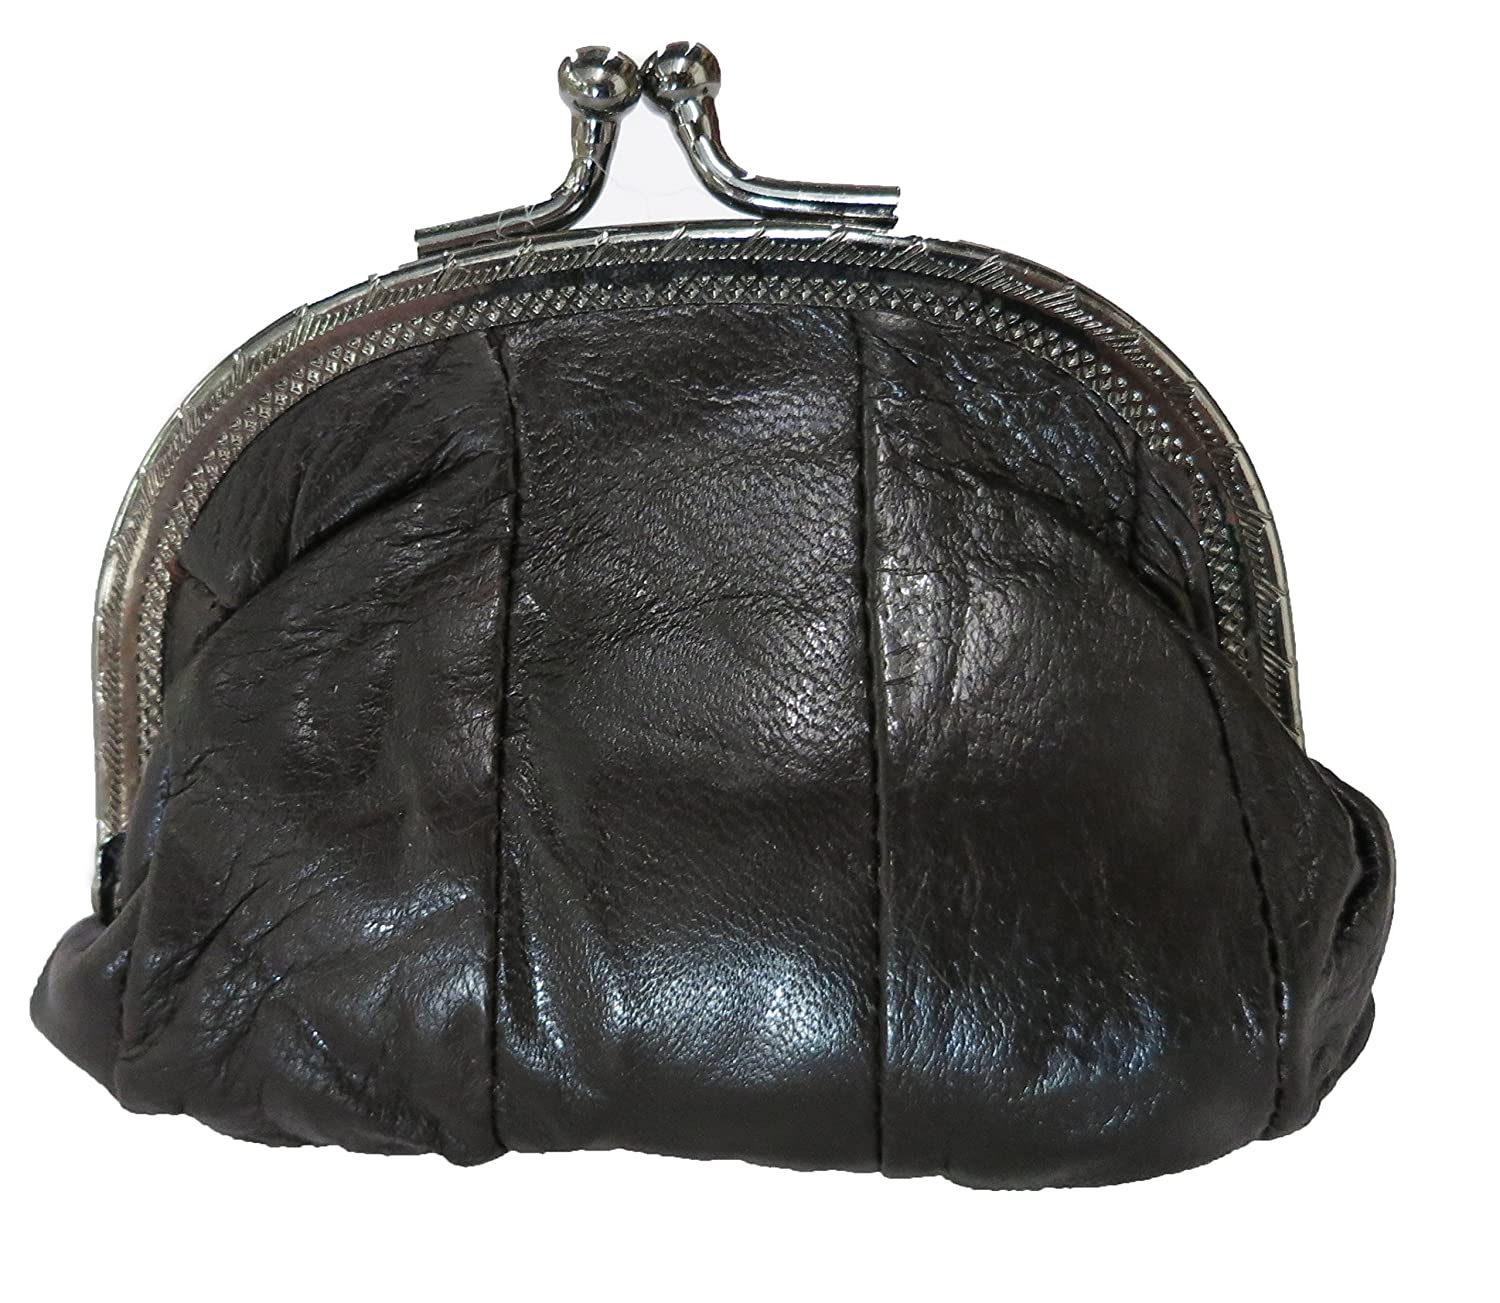 100% Leather Small Change Purse with Clasp